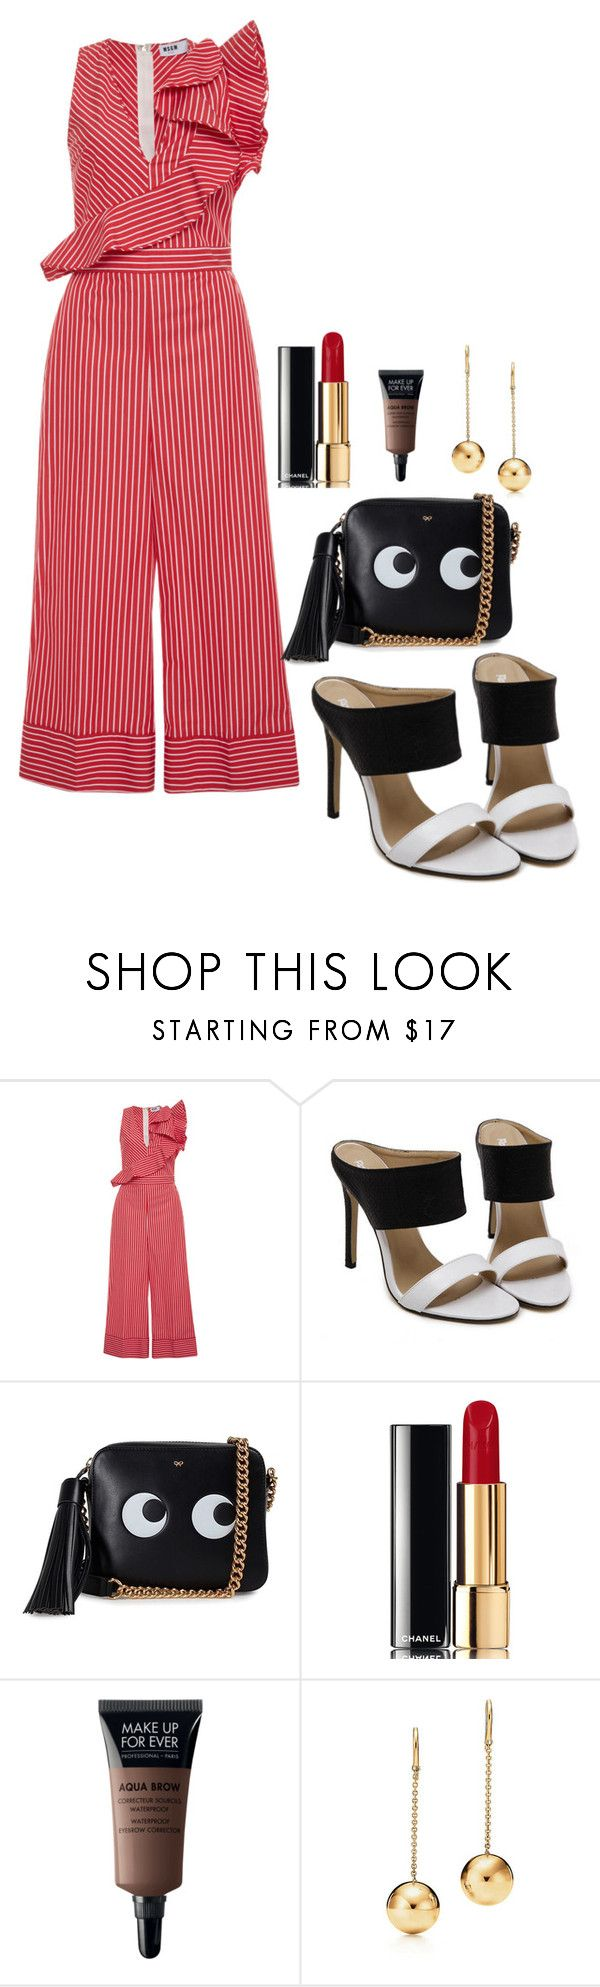 """""""marianne"""" by nover on Polyvore featuring MSGM, Anya Hindmarch and Chanel"""